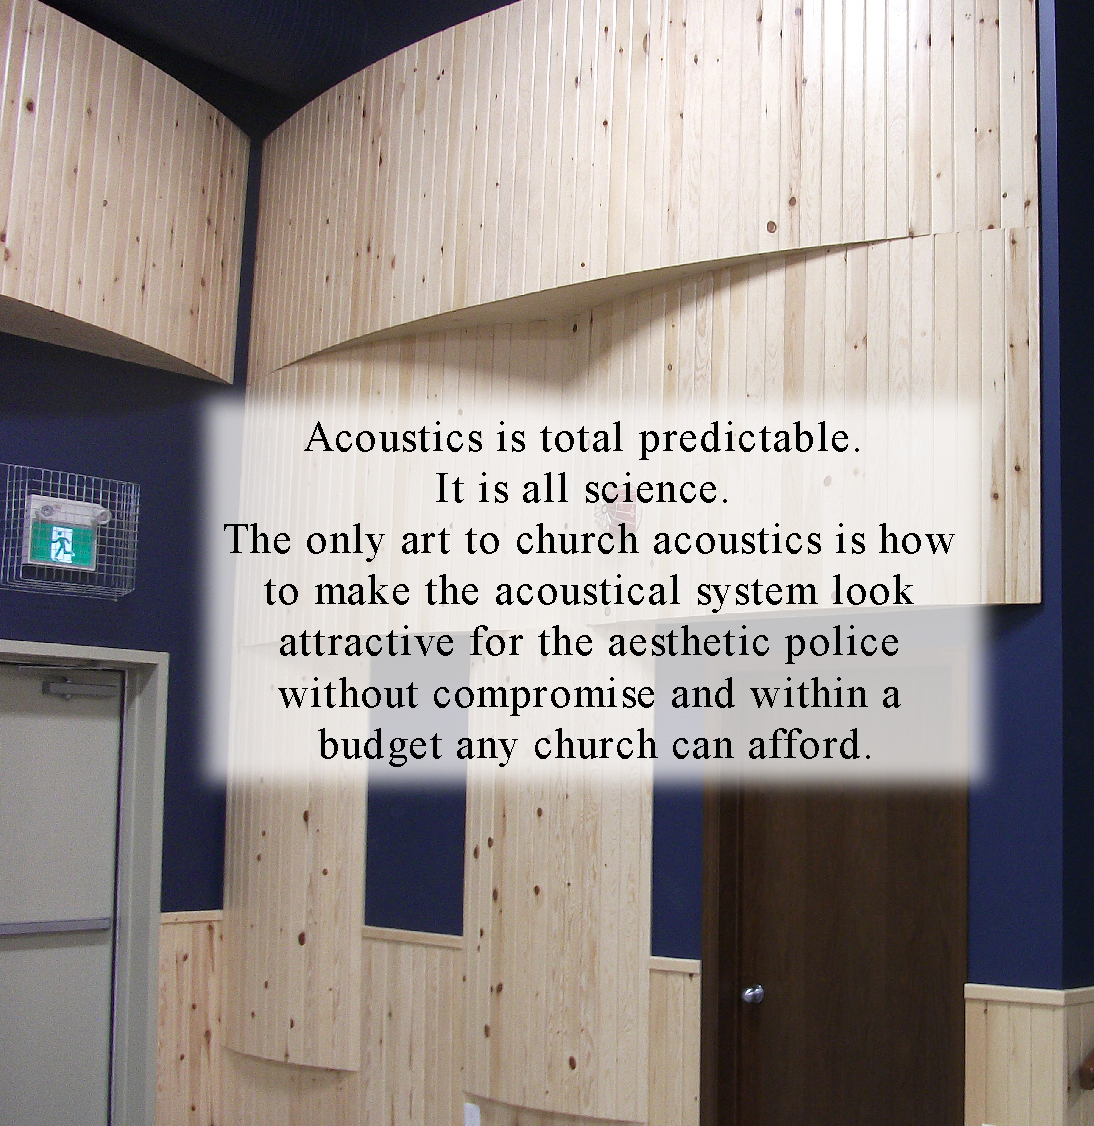 acoustics predicable